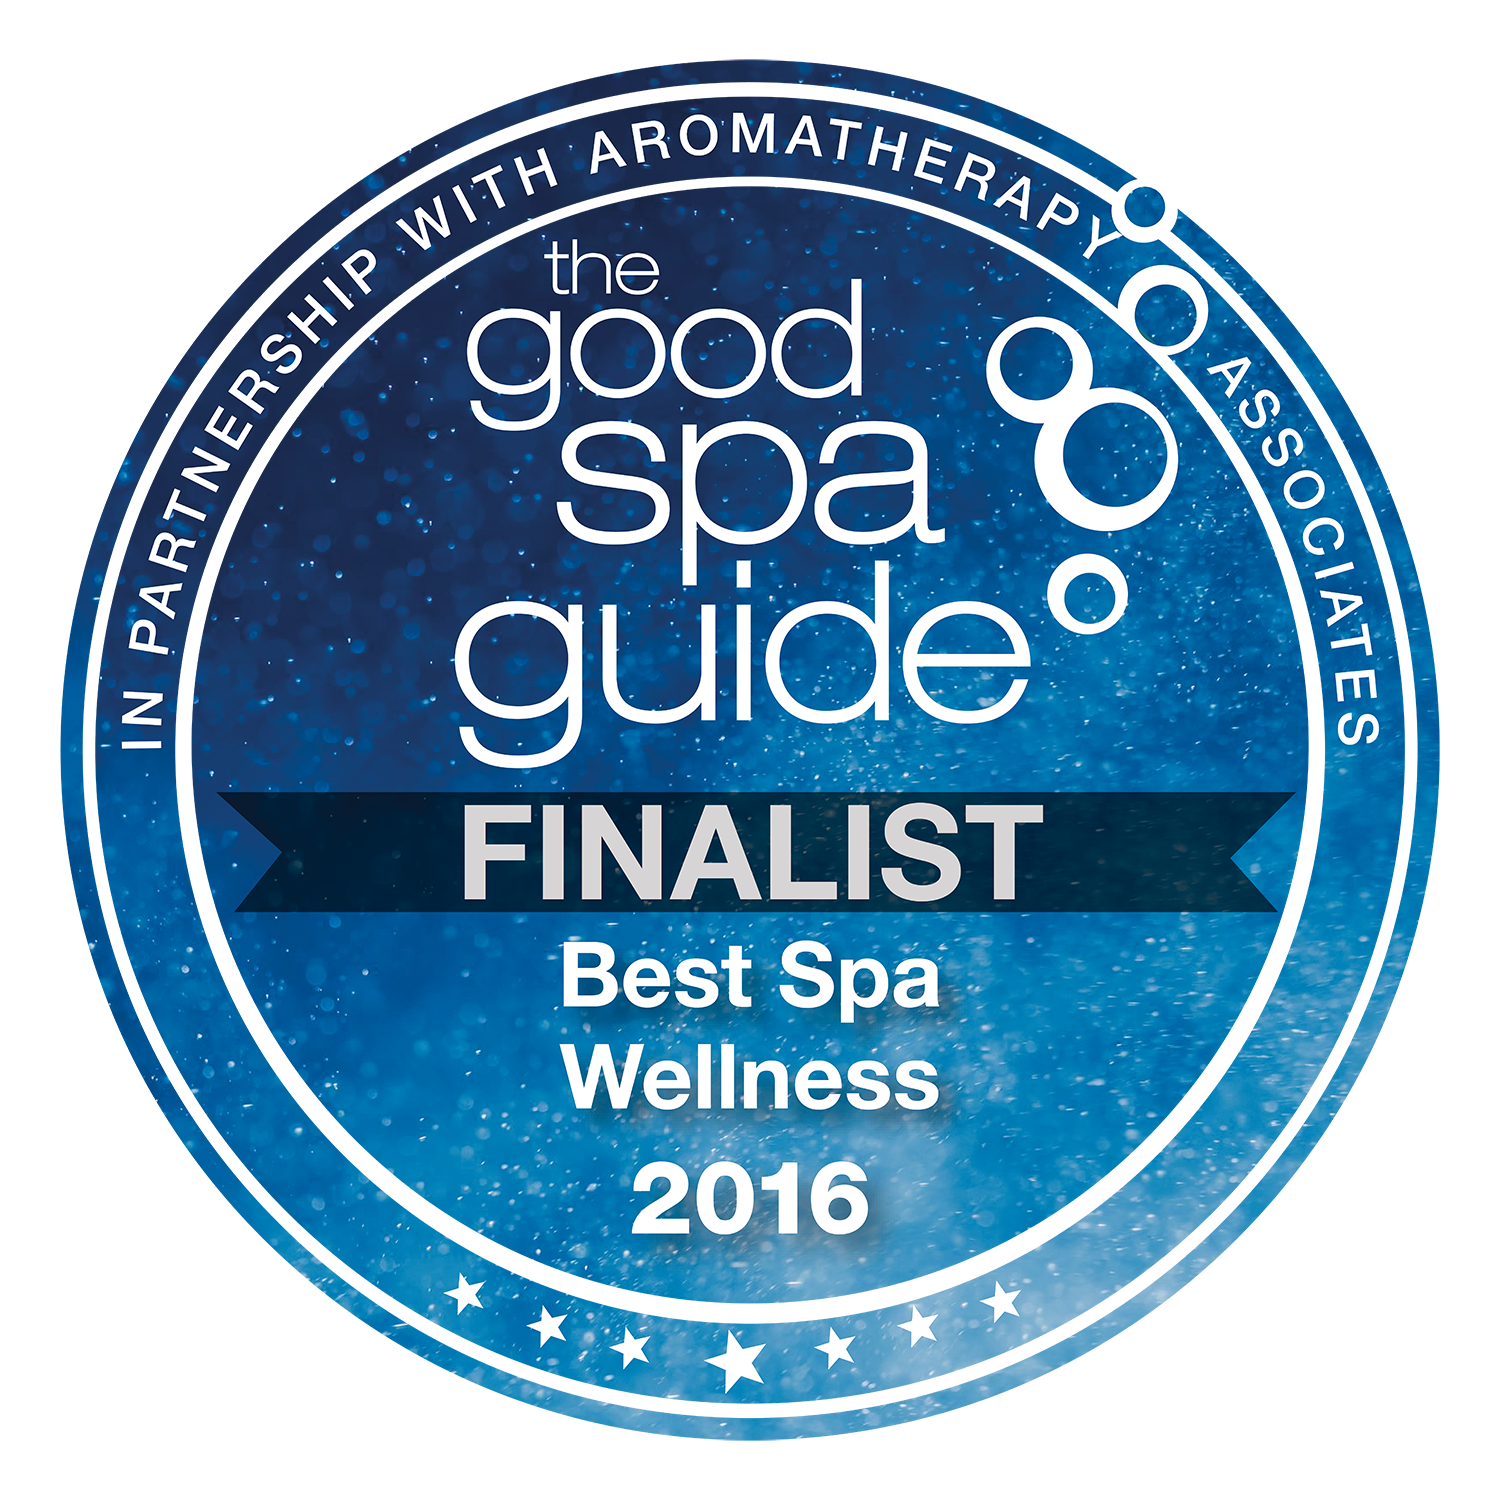 Best Spa Wellness 2016 Finalist